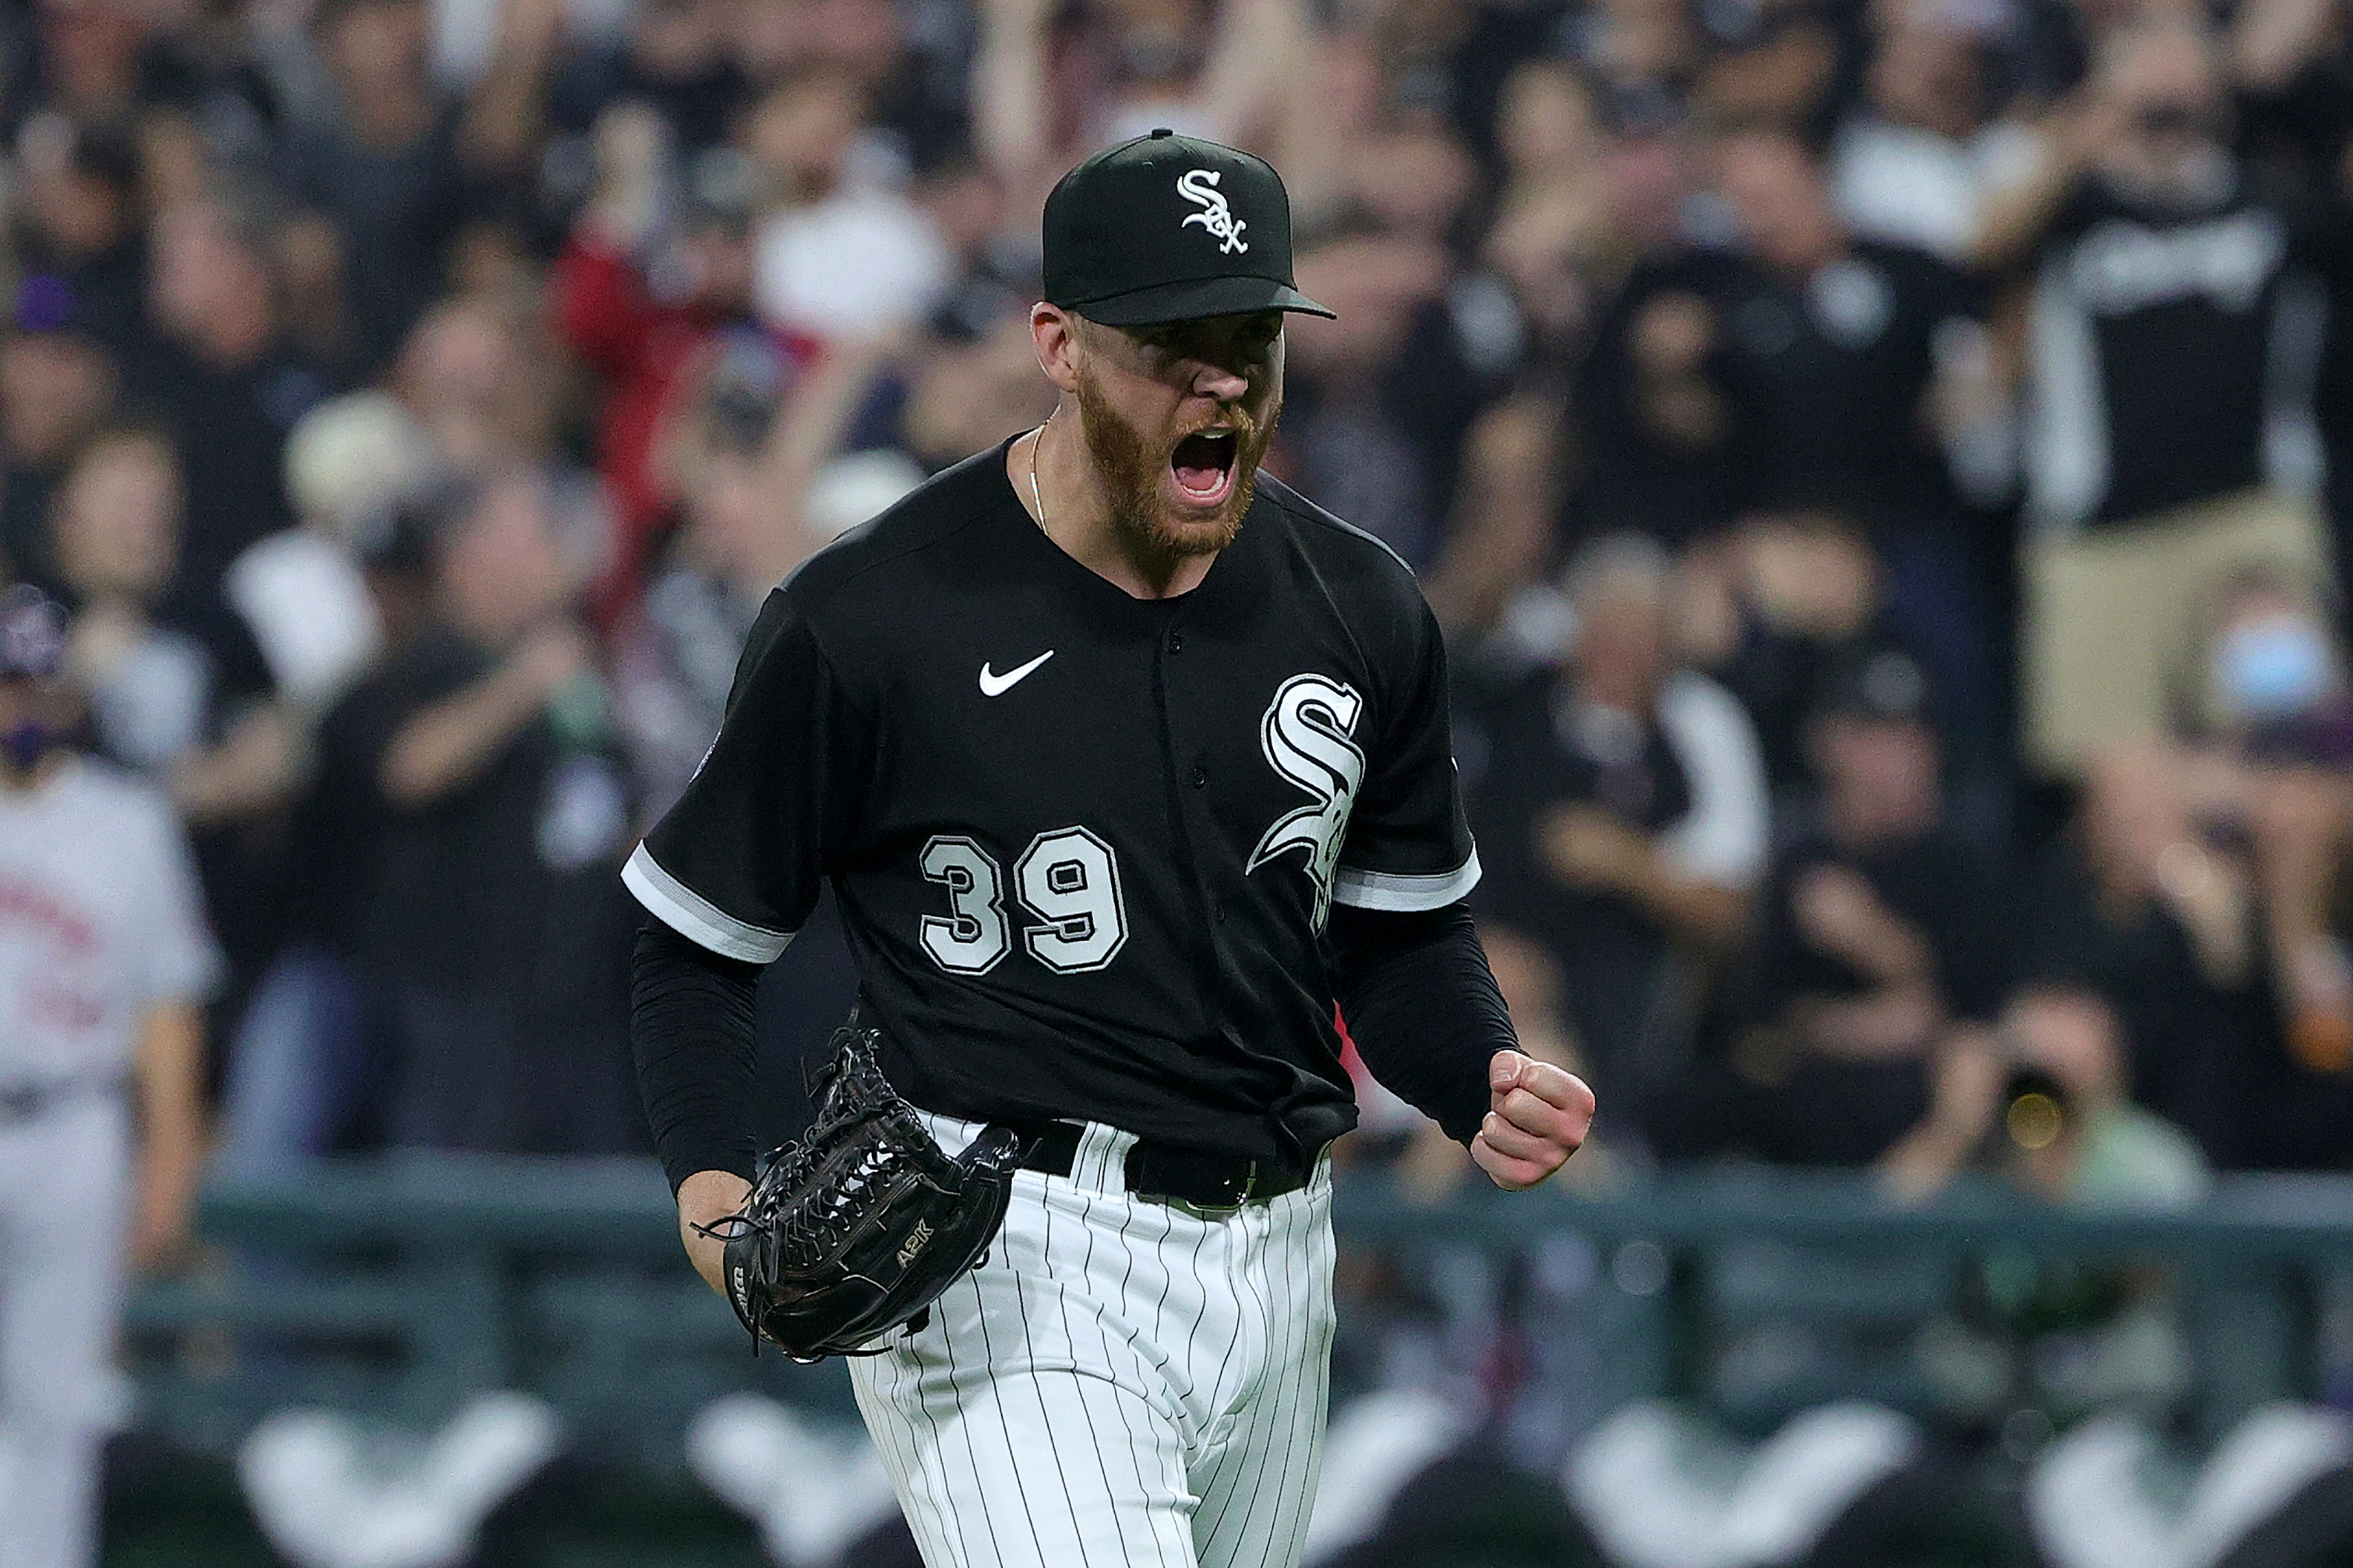 The White Sox' Aaron Bummer reacts after a strikeout in the seventh inning of the 12-6 ALDS Game 3 win over the Astros.